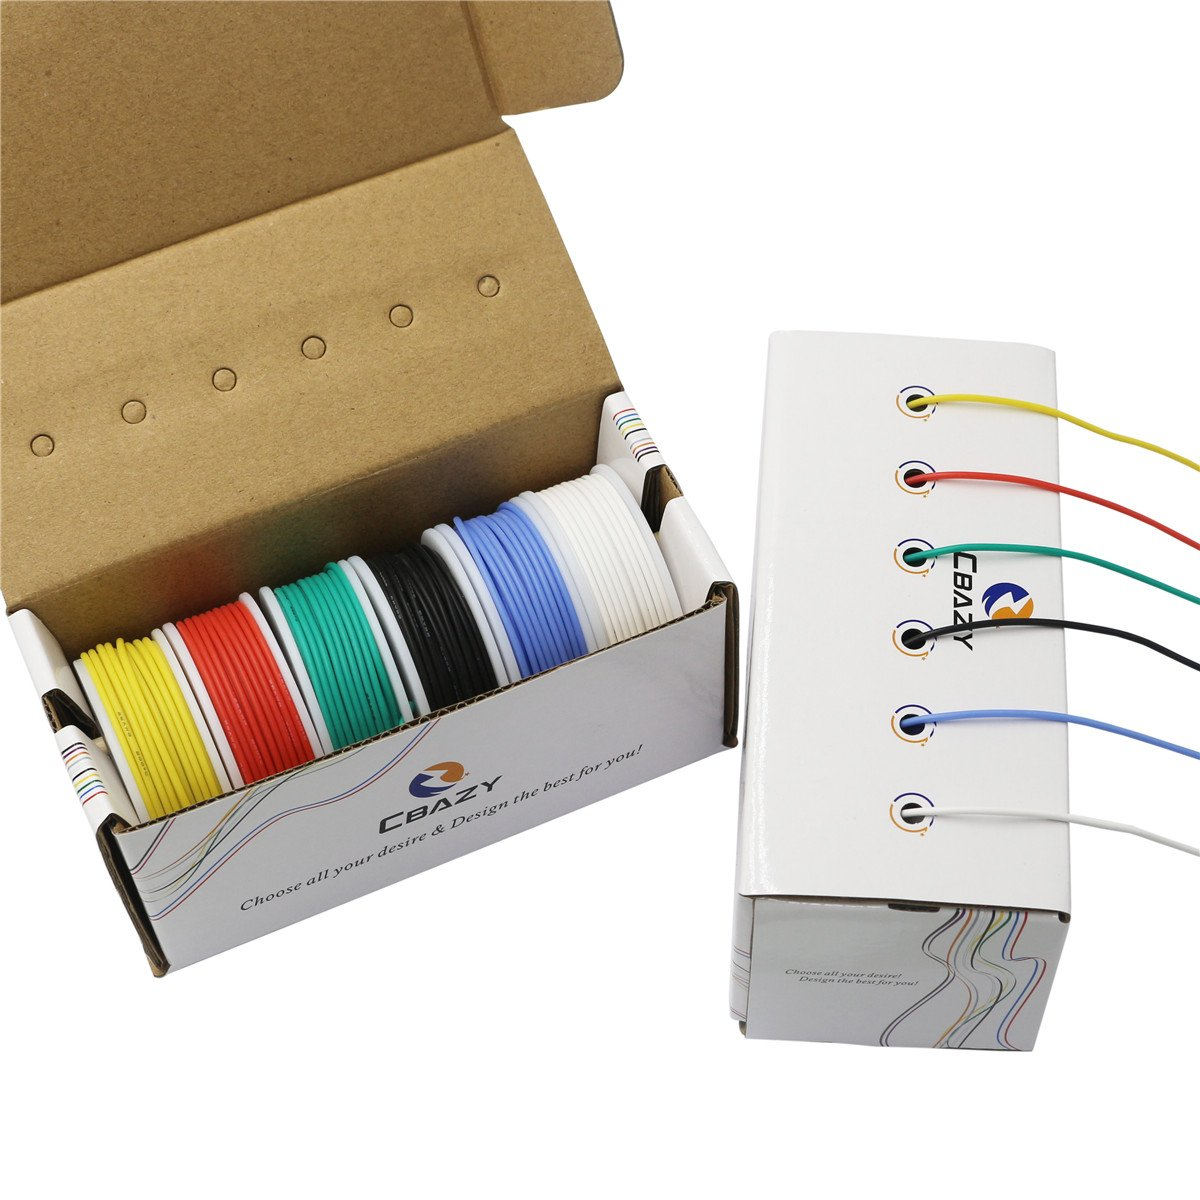 CBAZY™ Hook up Wire Kit (Stranded Wire Kit) 20 Gauge Flexible Silicone Rubber Electric Wire 6 Colors 19.6 feet Each 20 AWG